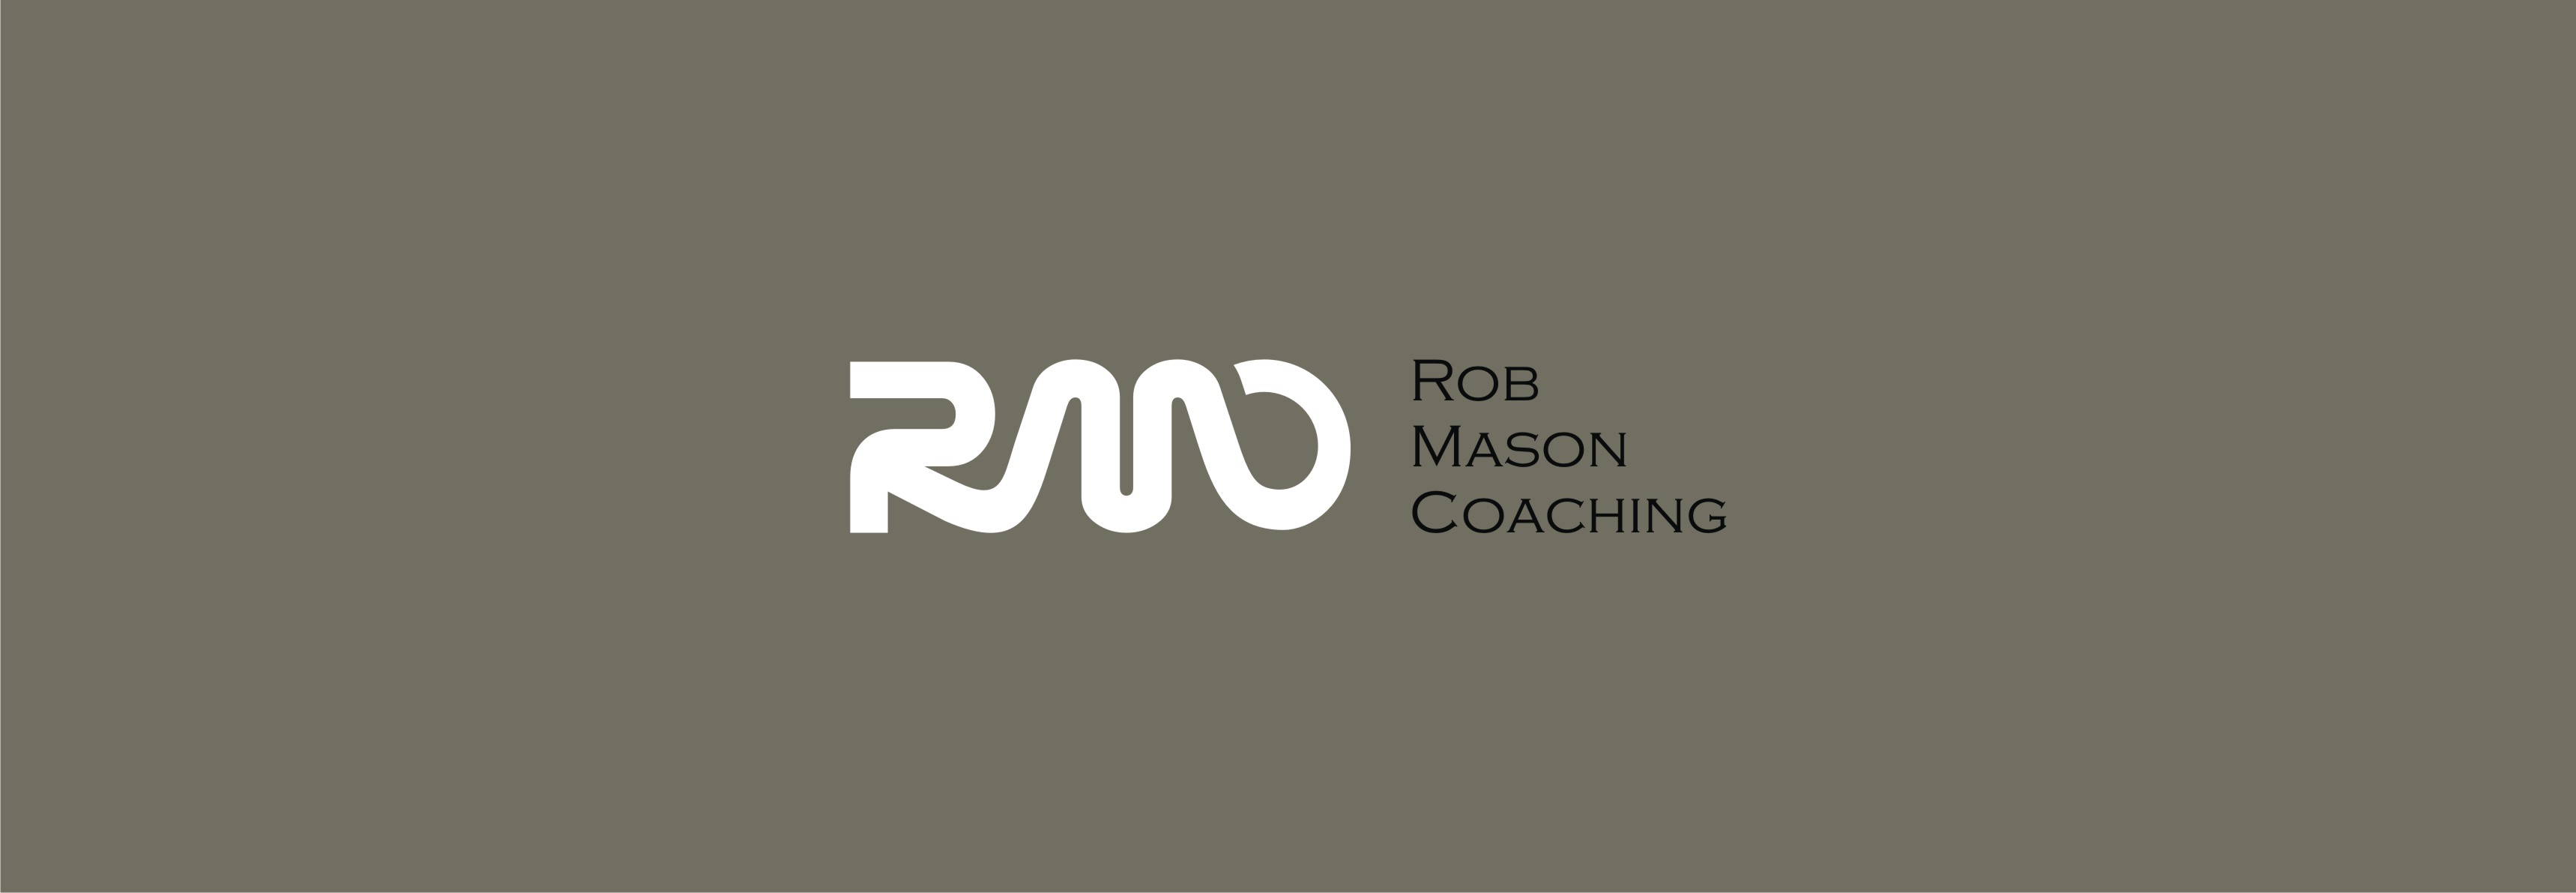 Logo Design by Private User - Entry No. 74 in the Logo Design Contest New Logo Design Needed for Exciting Company Rob Mason Coaching.